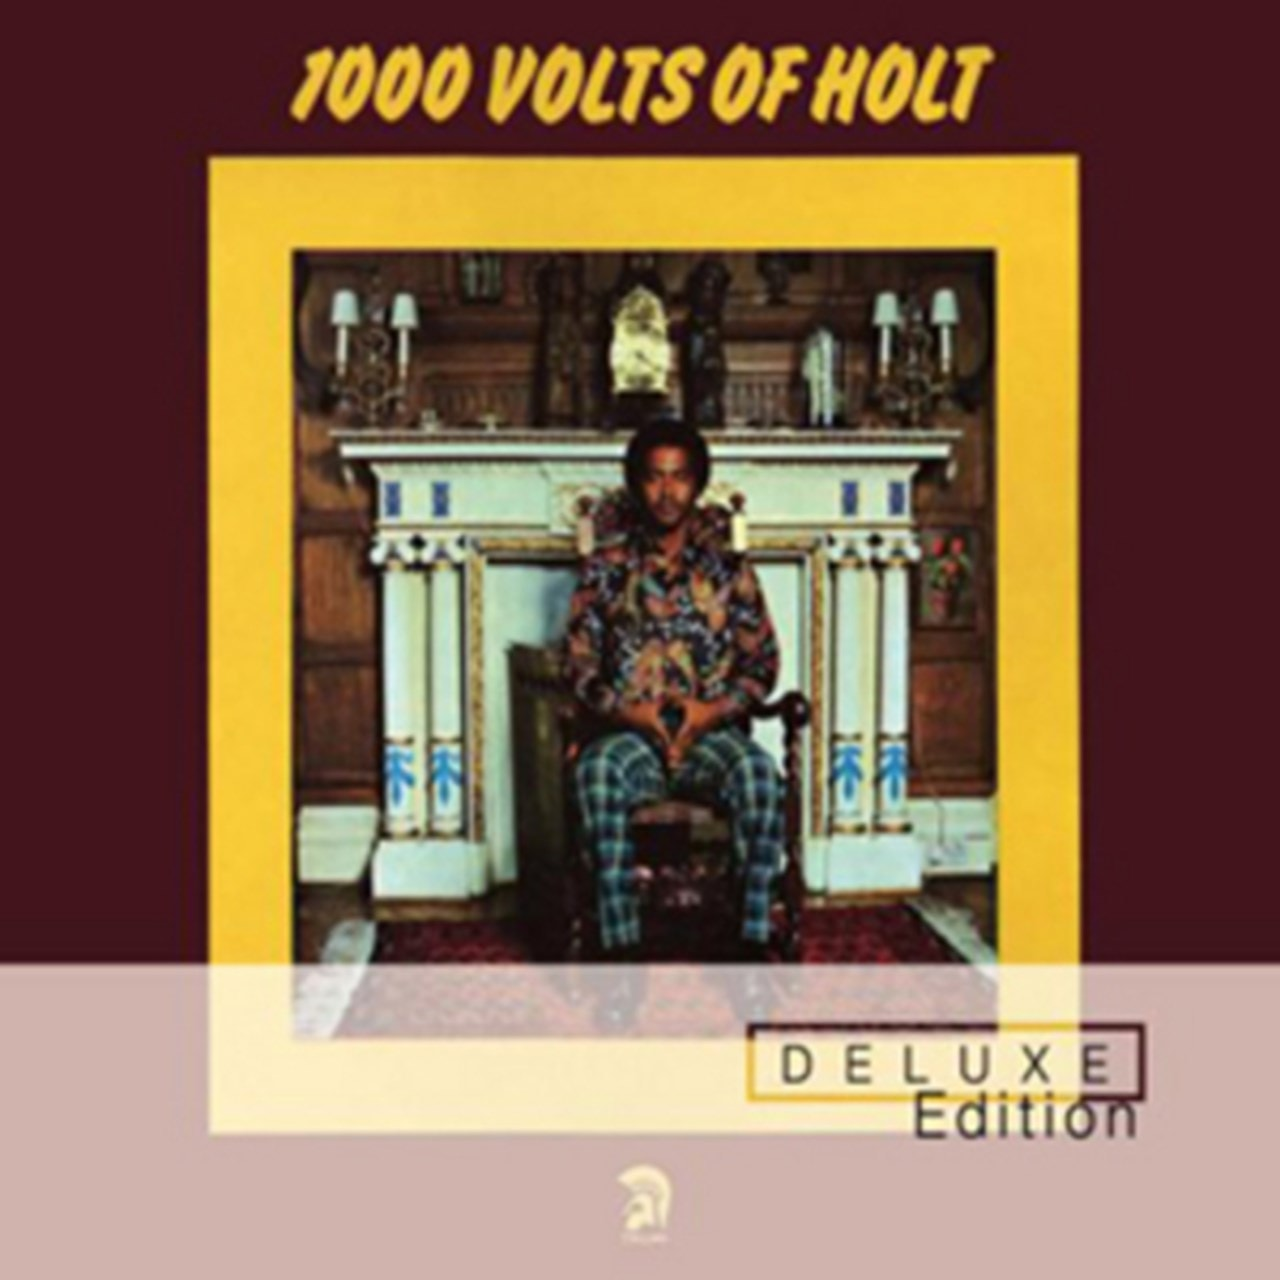 1000 Volts of Holt - 1